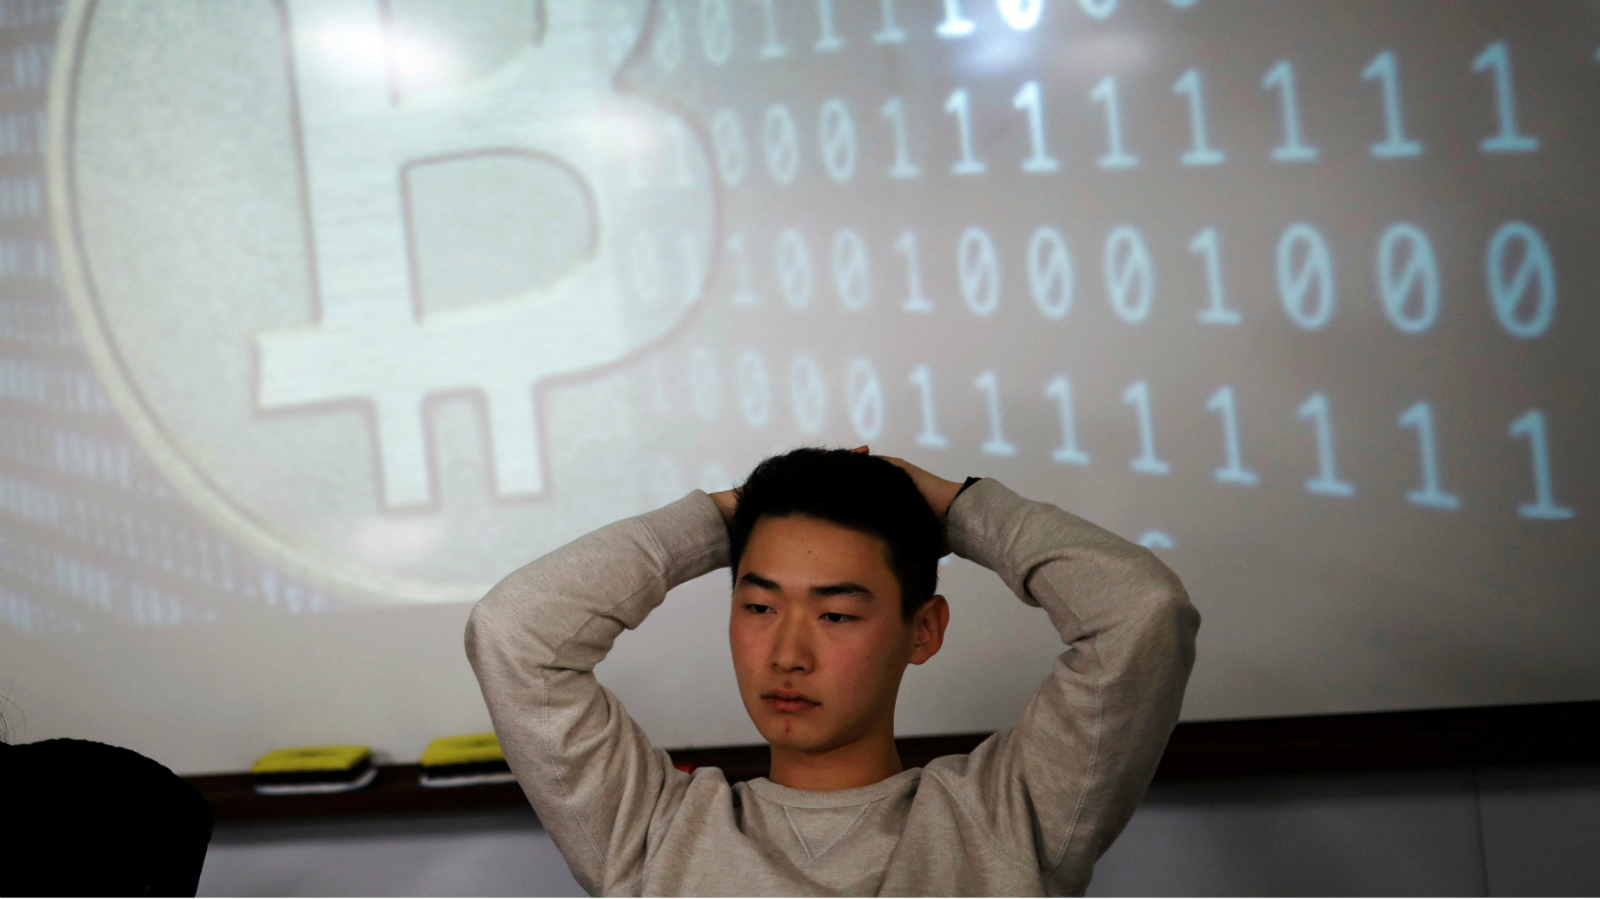 South Korea's crypto craze has morphed into a blockchain boom